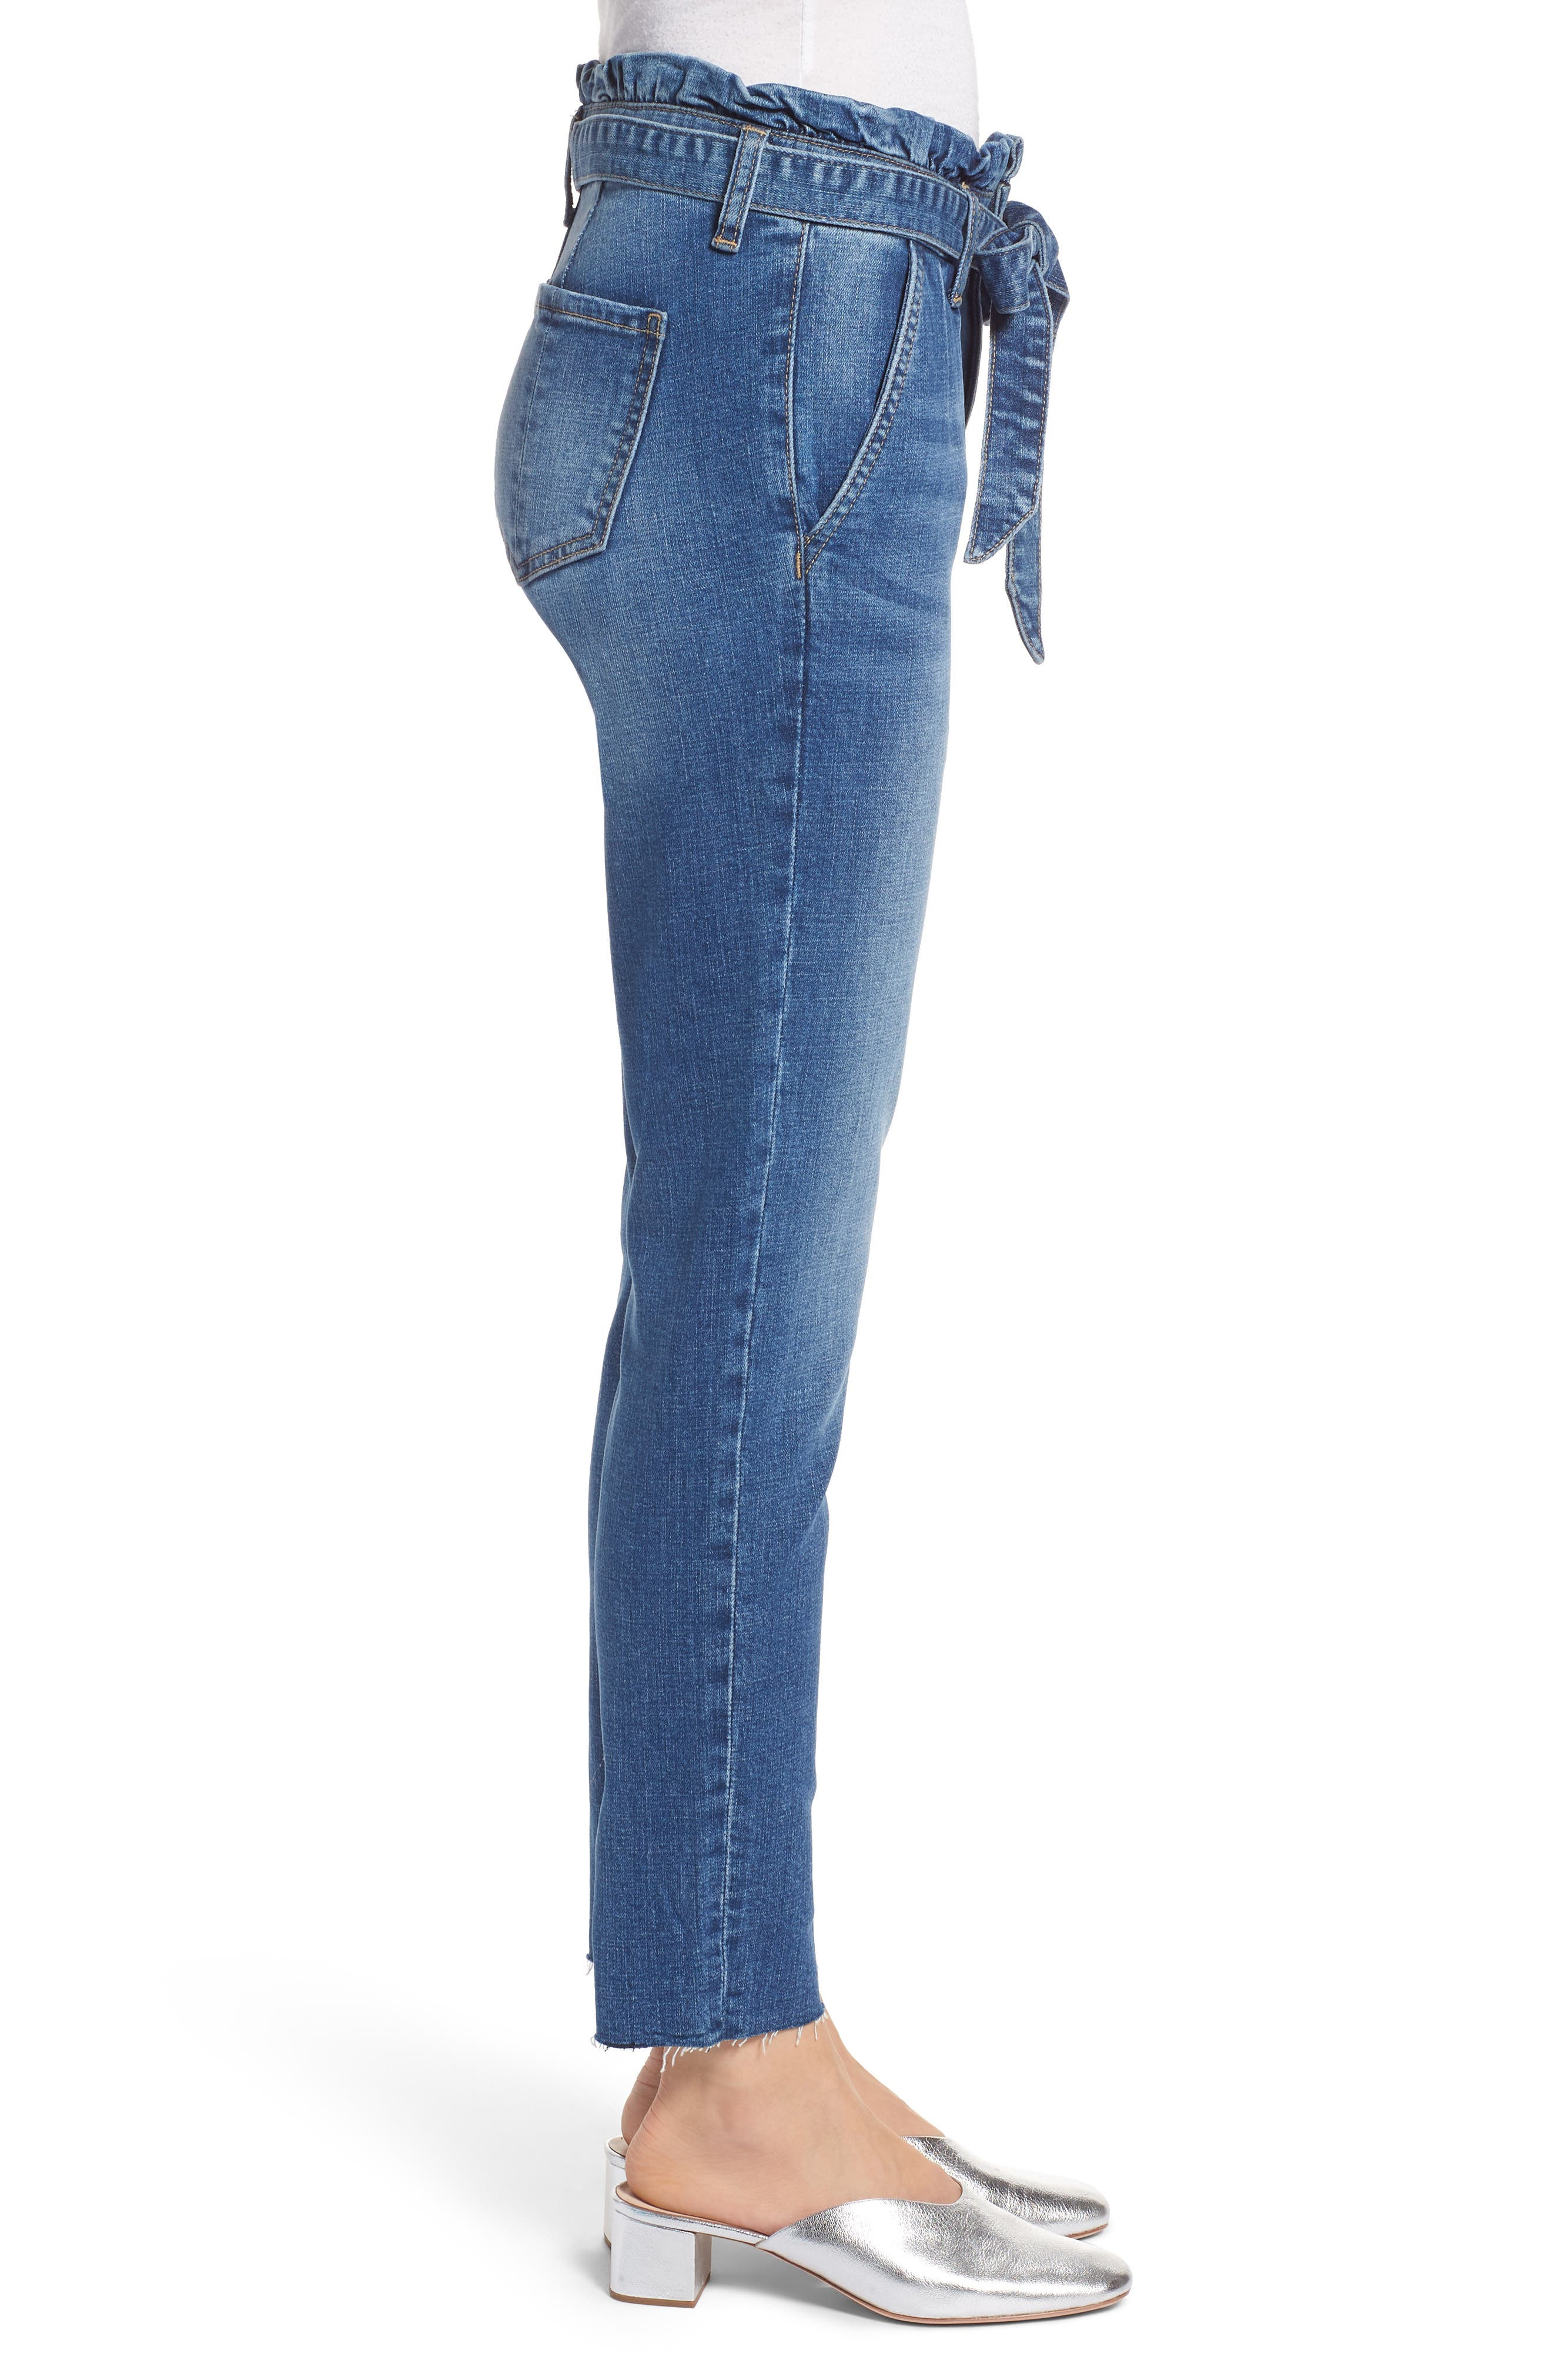 Paperbag Waist Skinny Jeans,                             Alternate thumbnail 3, color,                             PRETTY